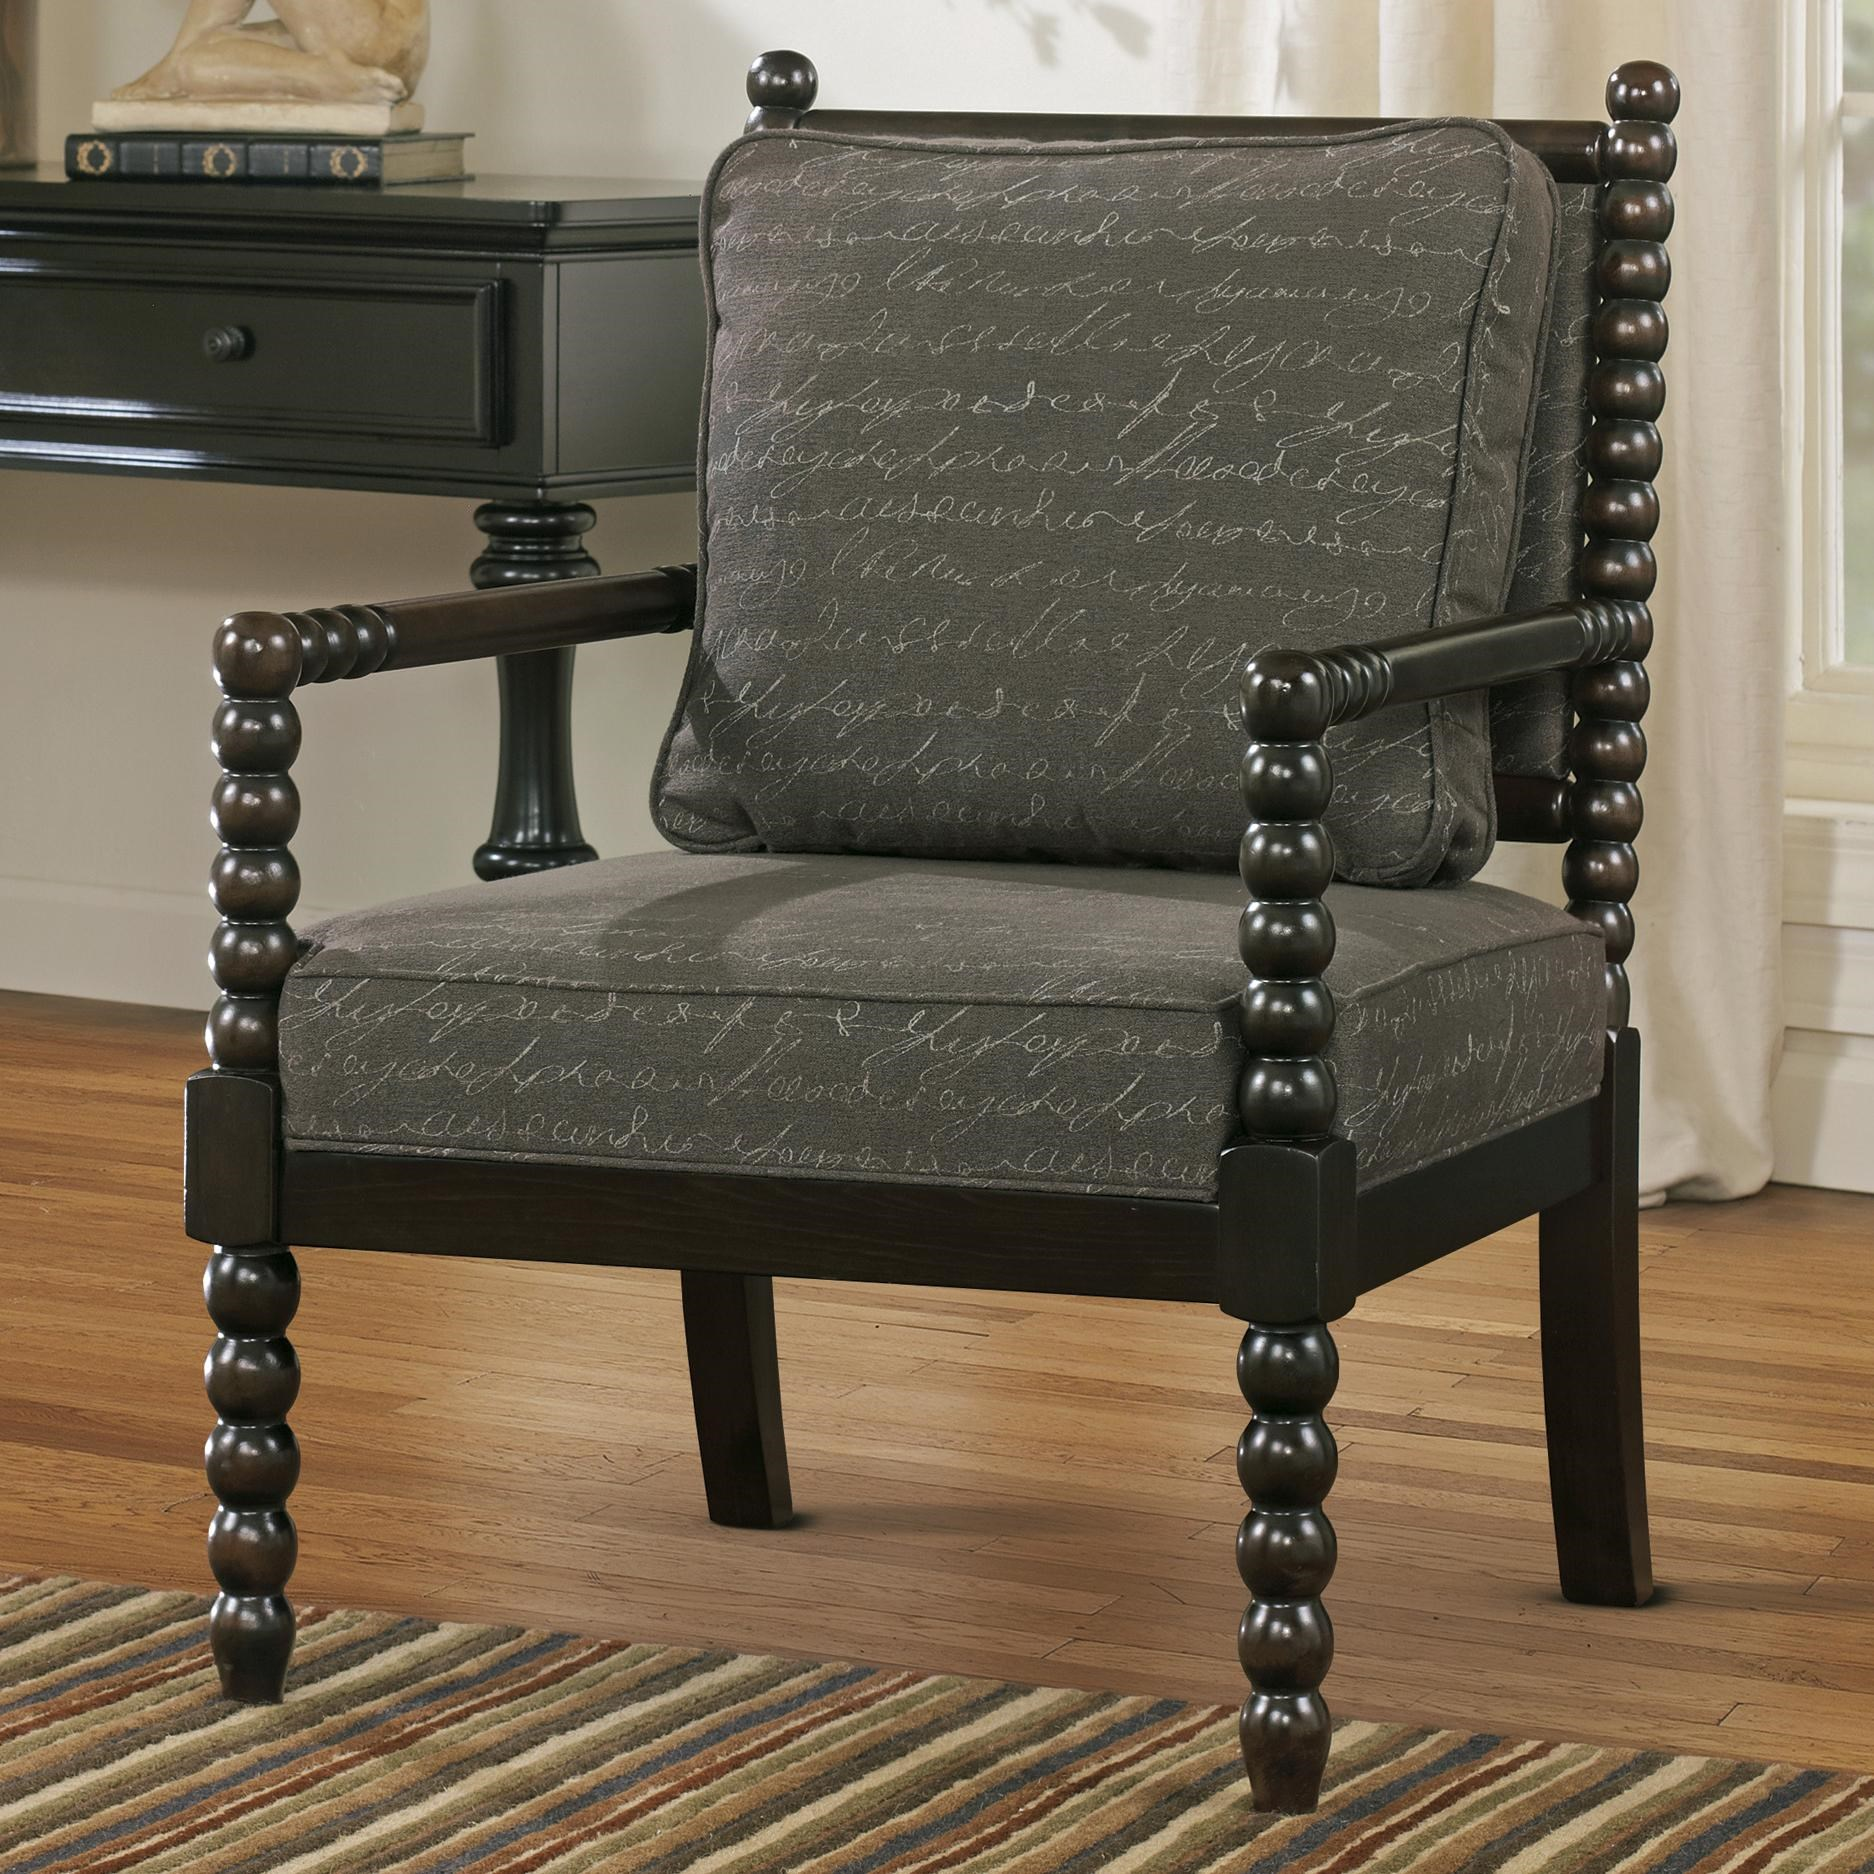 Exceptionnel Signature Design By Ashley Milari Accent Chair In Script Fabric With Spool  Turned Legs And Arms